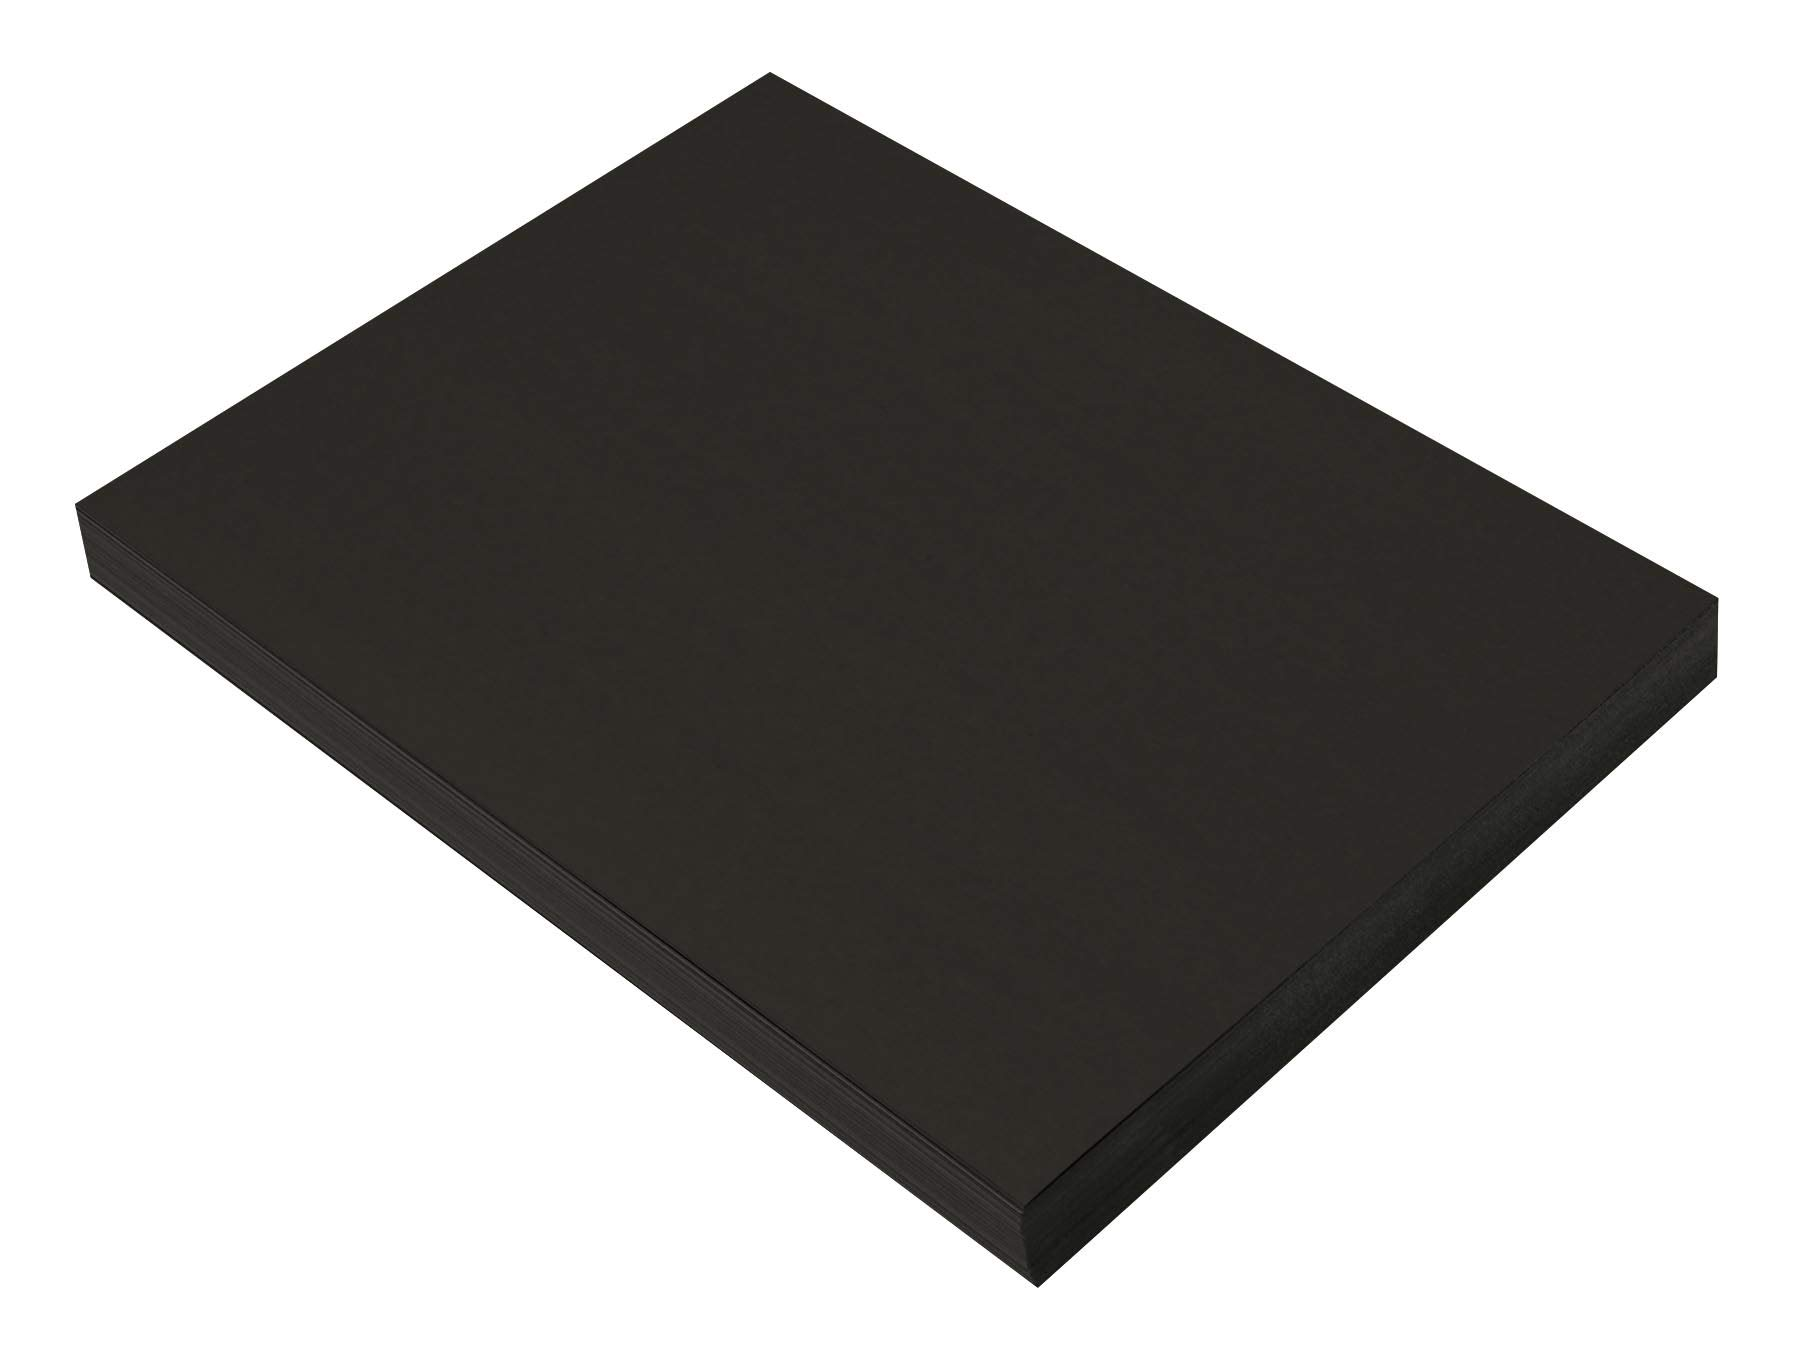 SunWorks Heavyweight Construction Paper, 9 x 12 Inches, Black, 100 Sheets